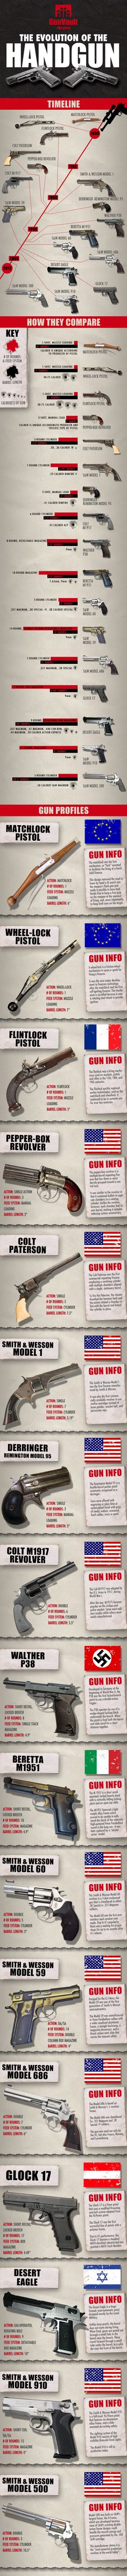 The Evolution of the Handgun. This one is such a great guide and cool graphic for anyone who loves guns.